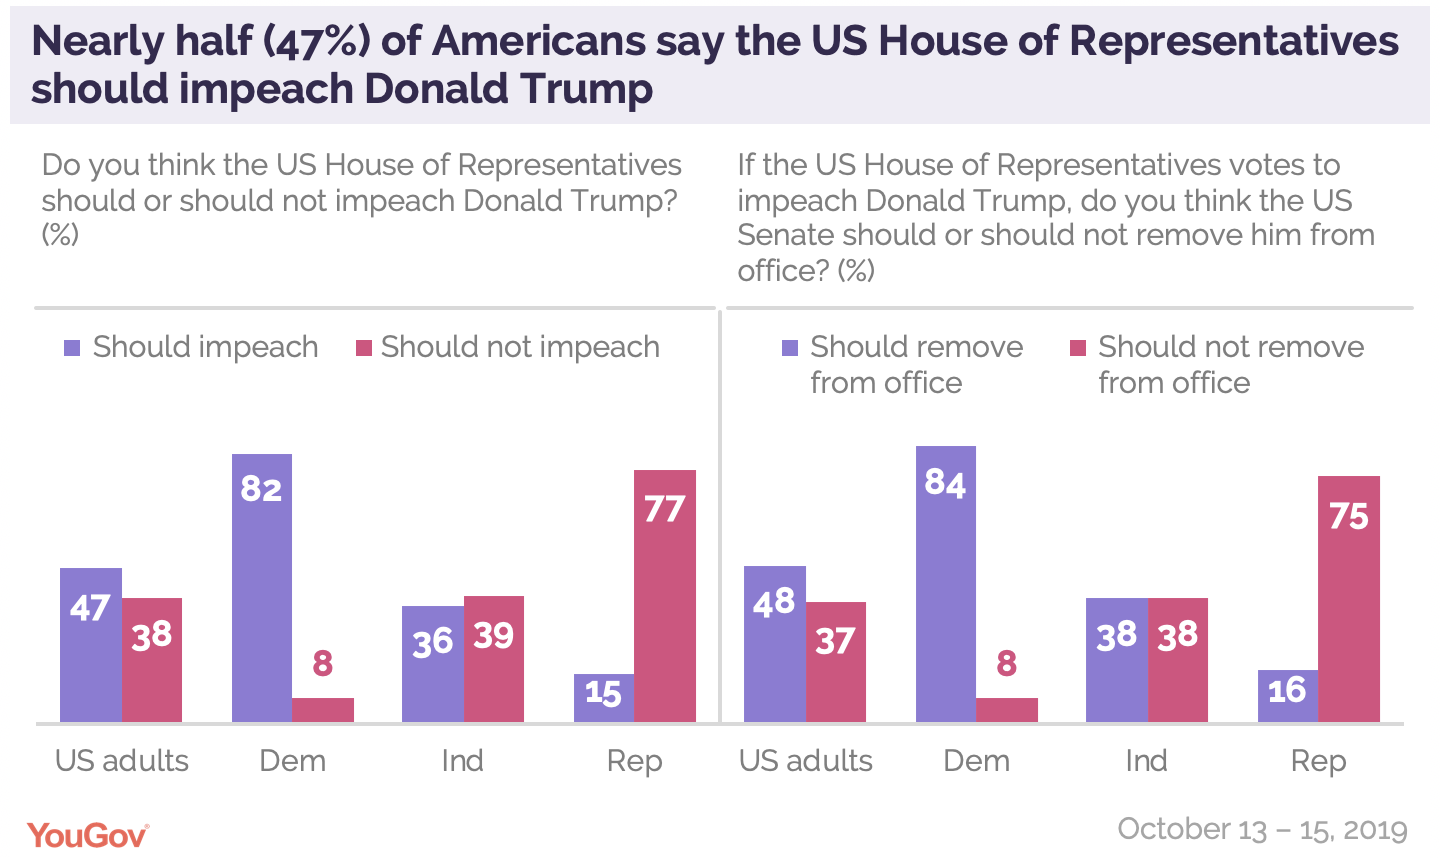 Nearly half (47%) of Americans say the US House of Representatives should impeach President Donald Trump